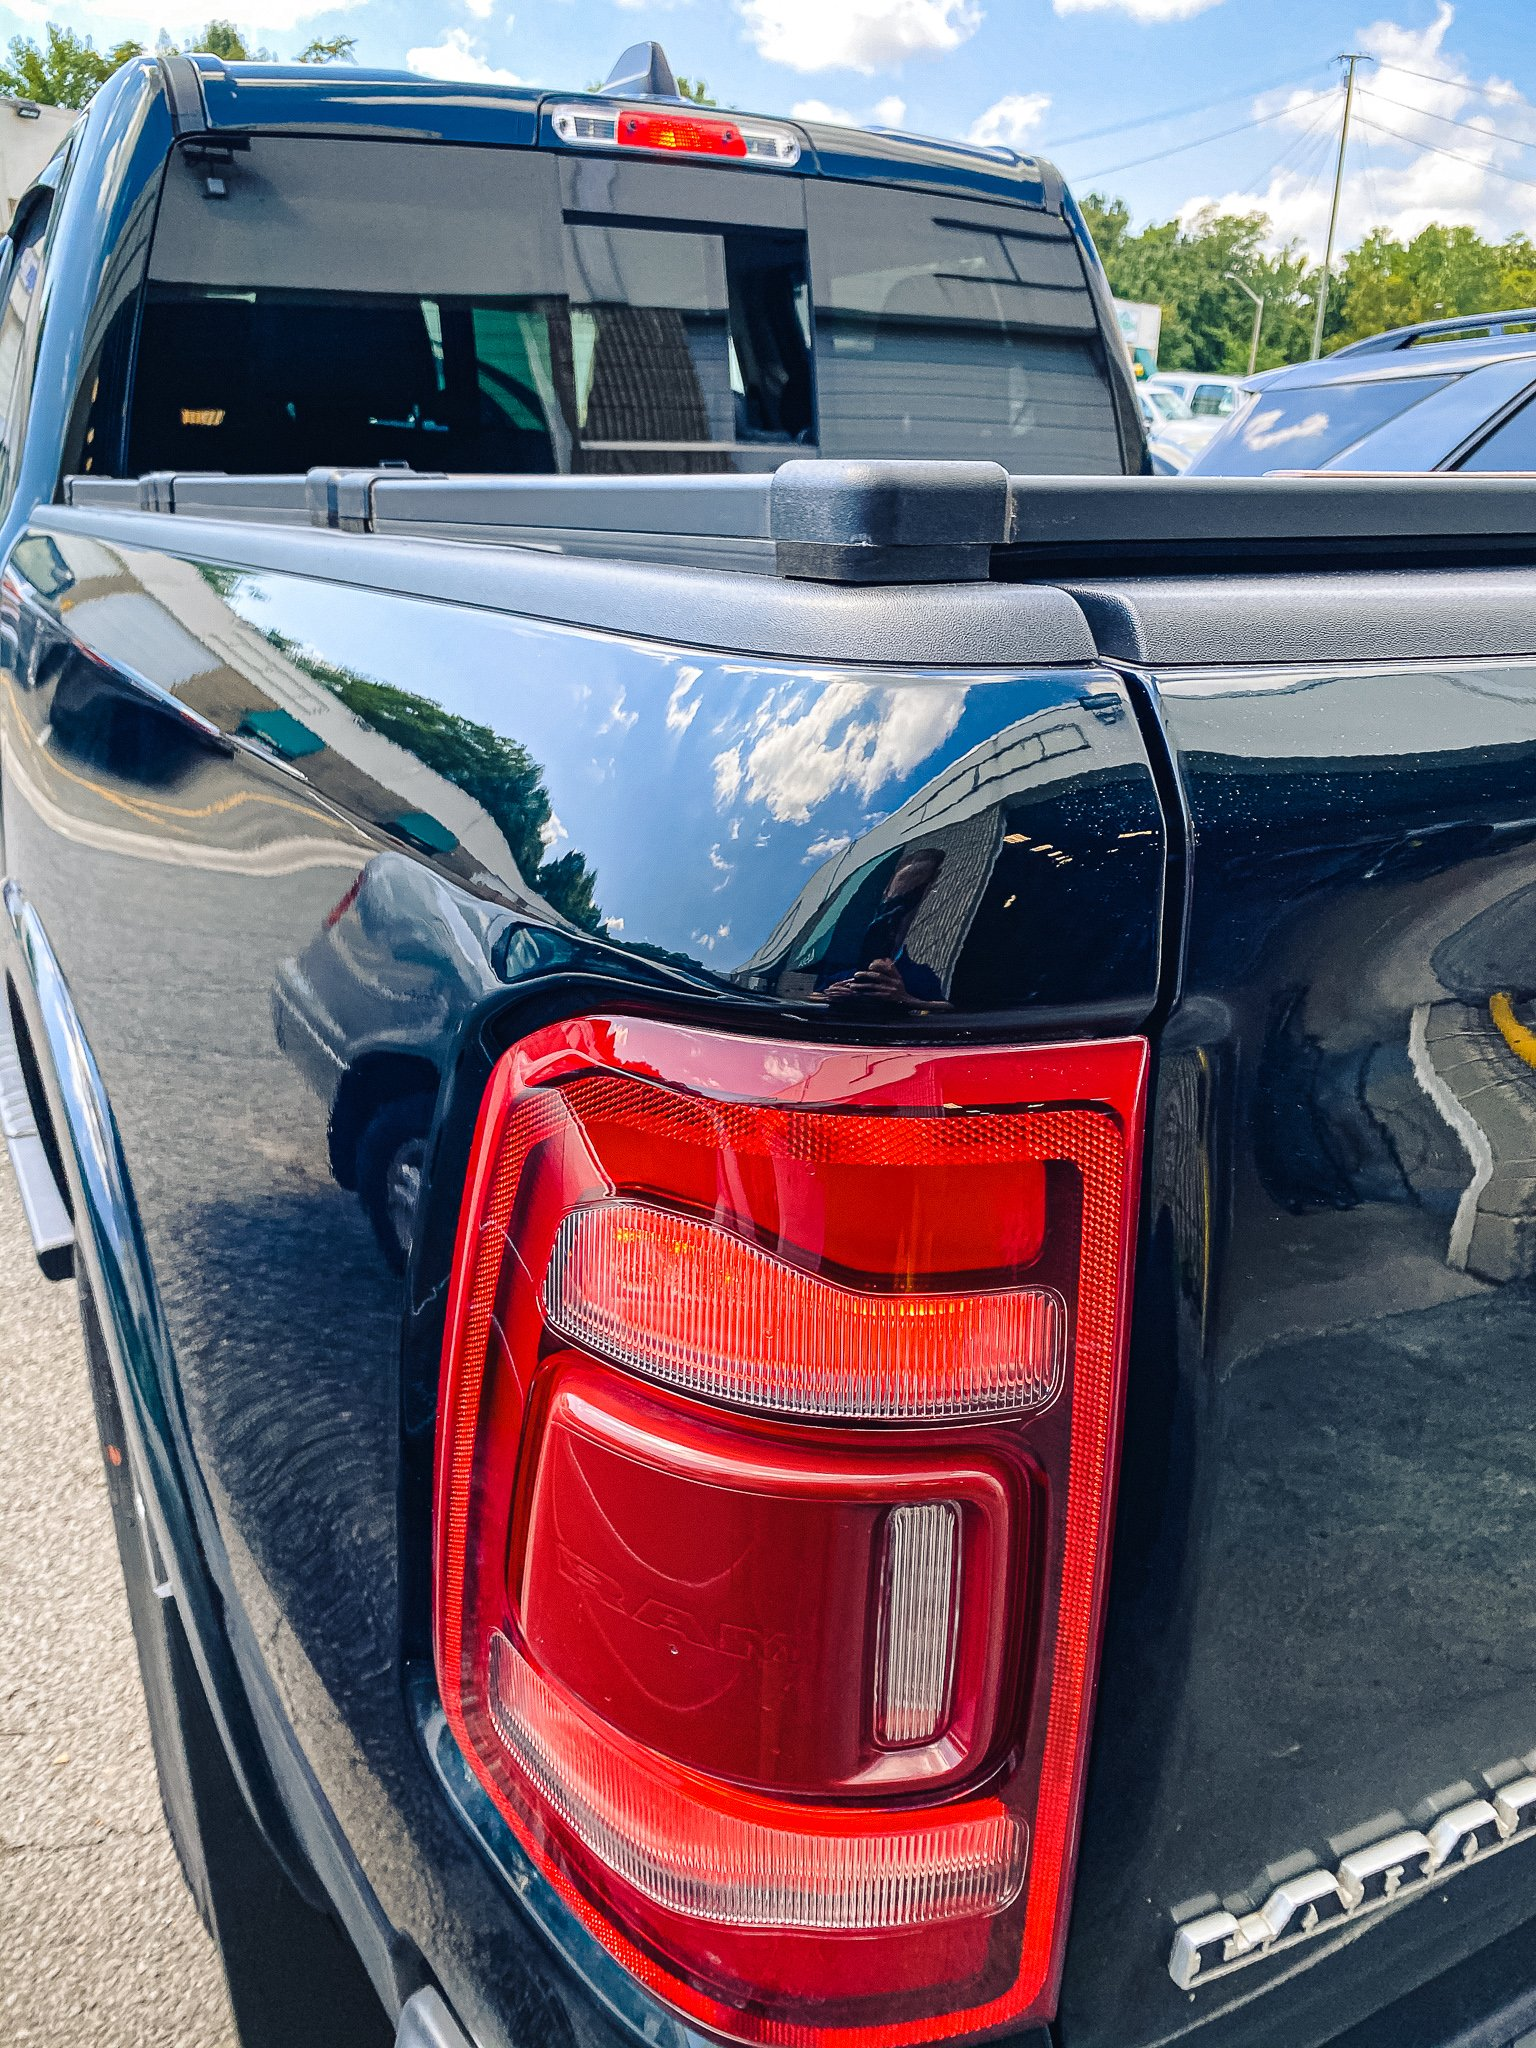 TRUCK BED DENT - AFTER REPAIR